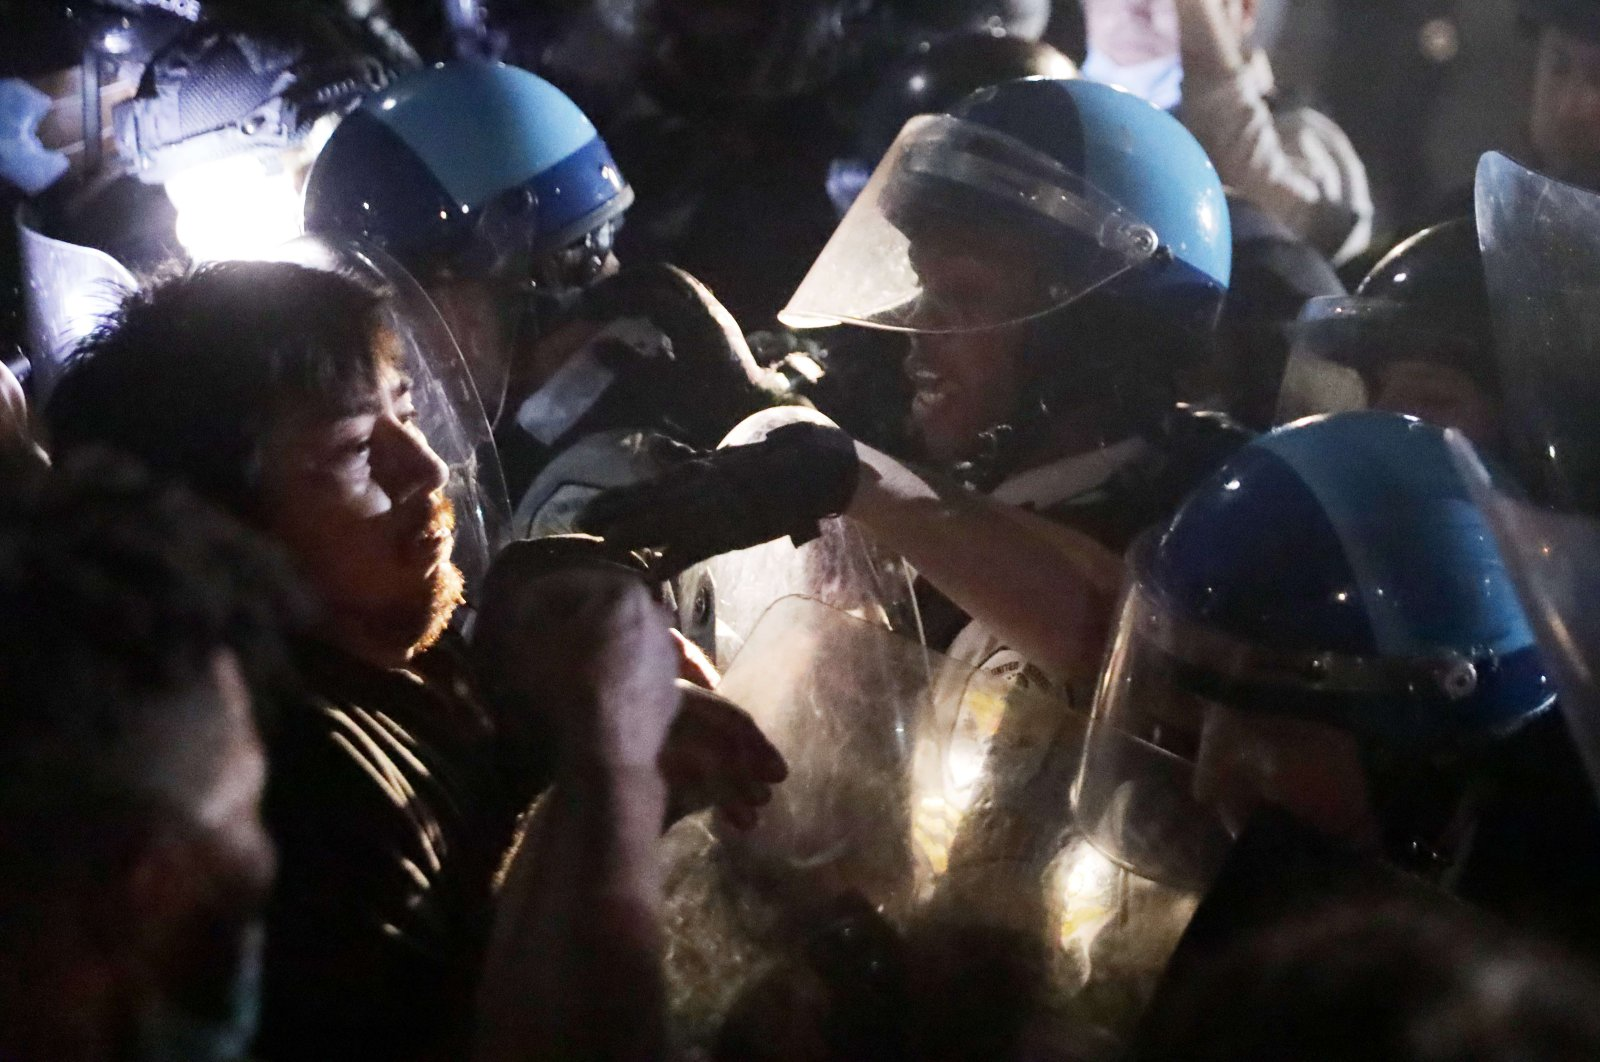 Demonstrators clash with police during a protest in response to the police killing of George Floyd in Lafayette Square Park in the early morning hours of May 30, 2020, in Washington. (AFP Photo)